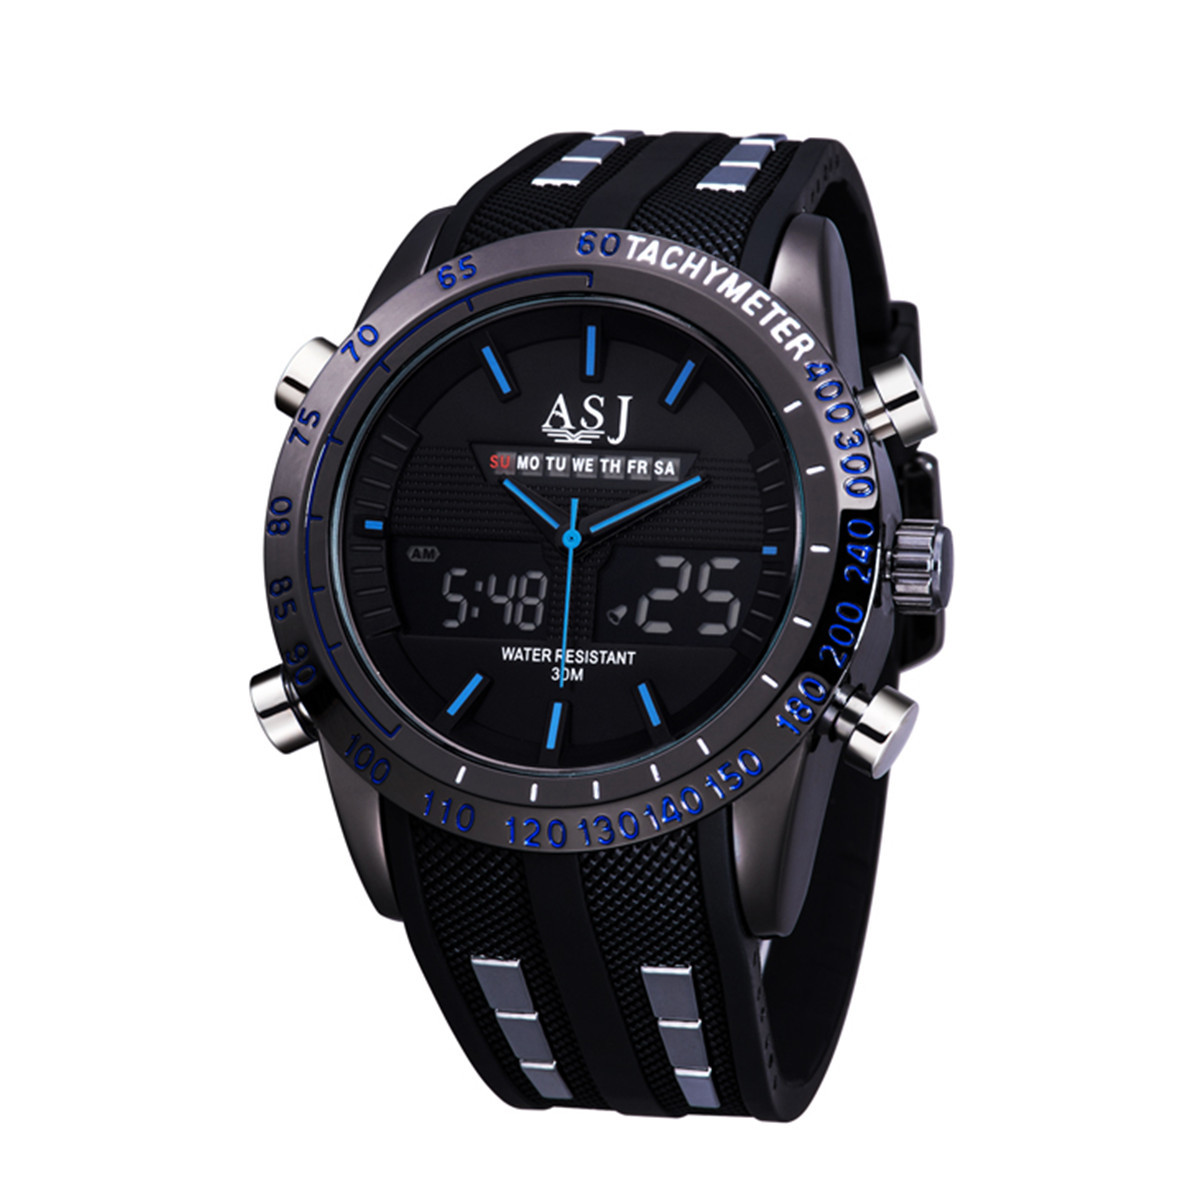 relogios masculinos 2016 ASJ Outdoor Blue Sports Watch Men Digital Watches Military Male Army Clock Quartz Mens LED Wristwatches weide men sports watches waterproof military quartz digital watch alarm stopwatch dual time zones wristwatch relogios masculinos